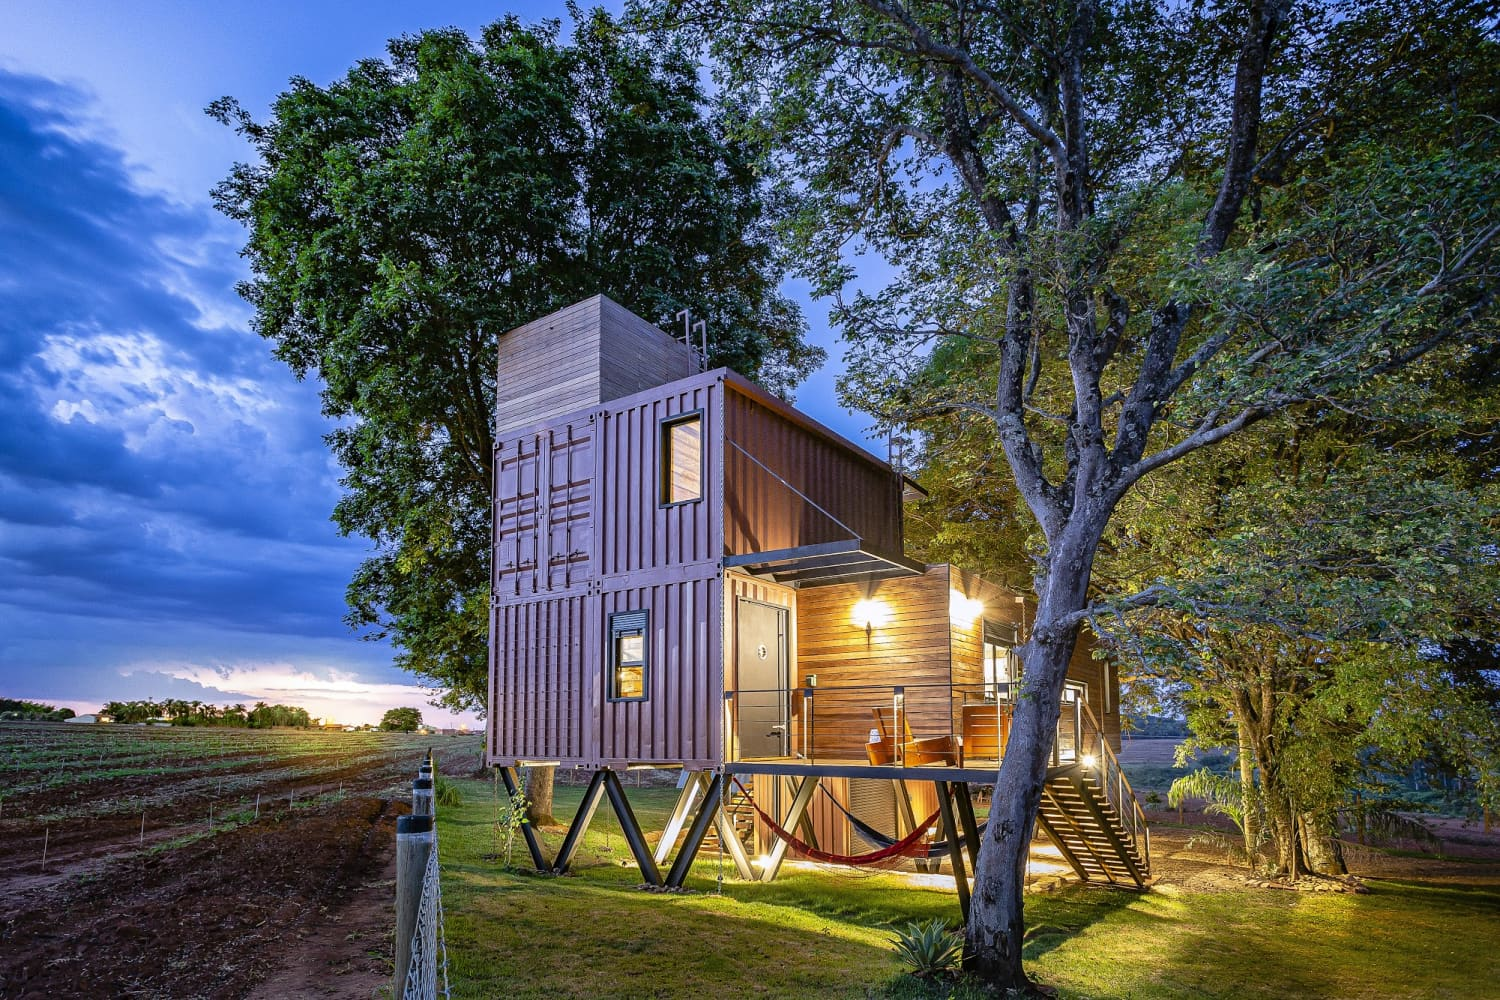 This Eco-Friendly Shipping Container House Is Suspended Off the Ground to Blend In with Nature